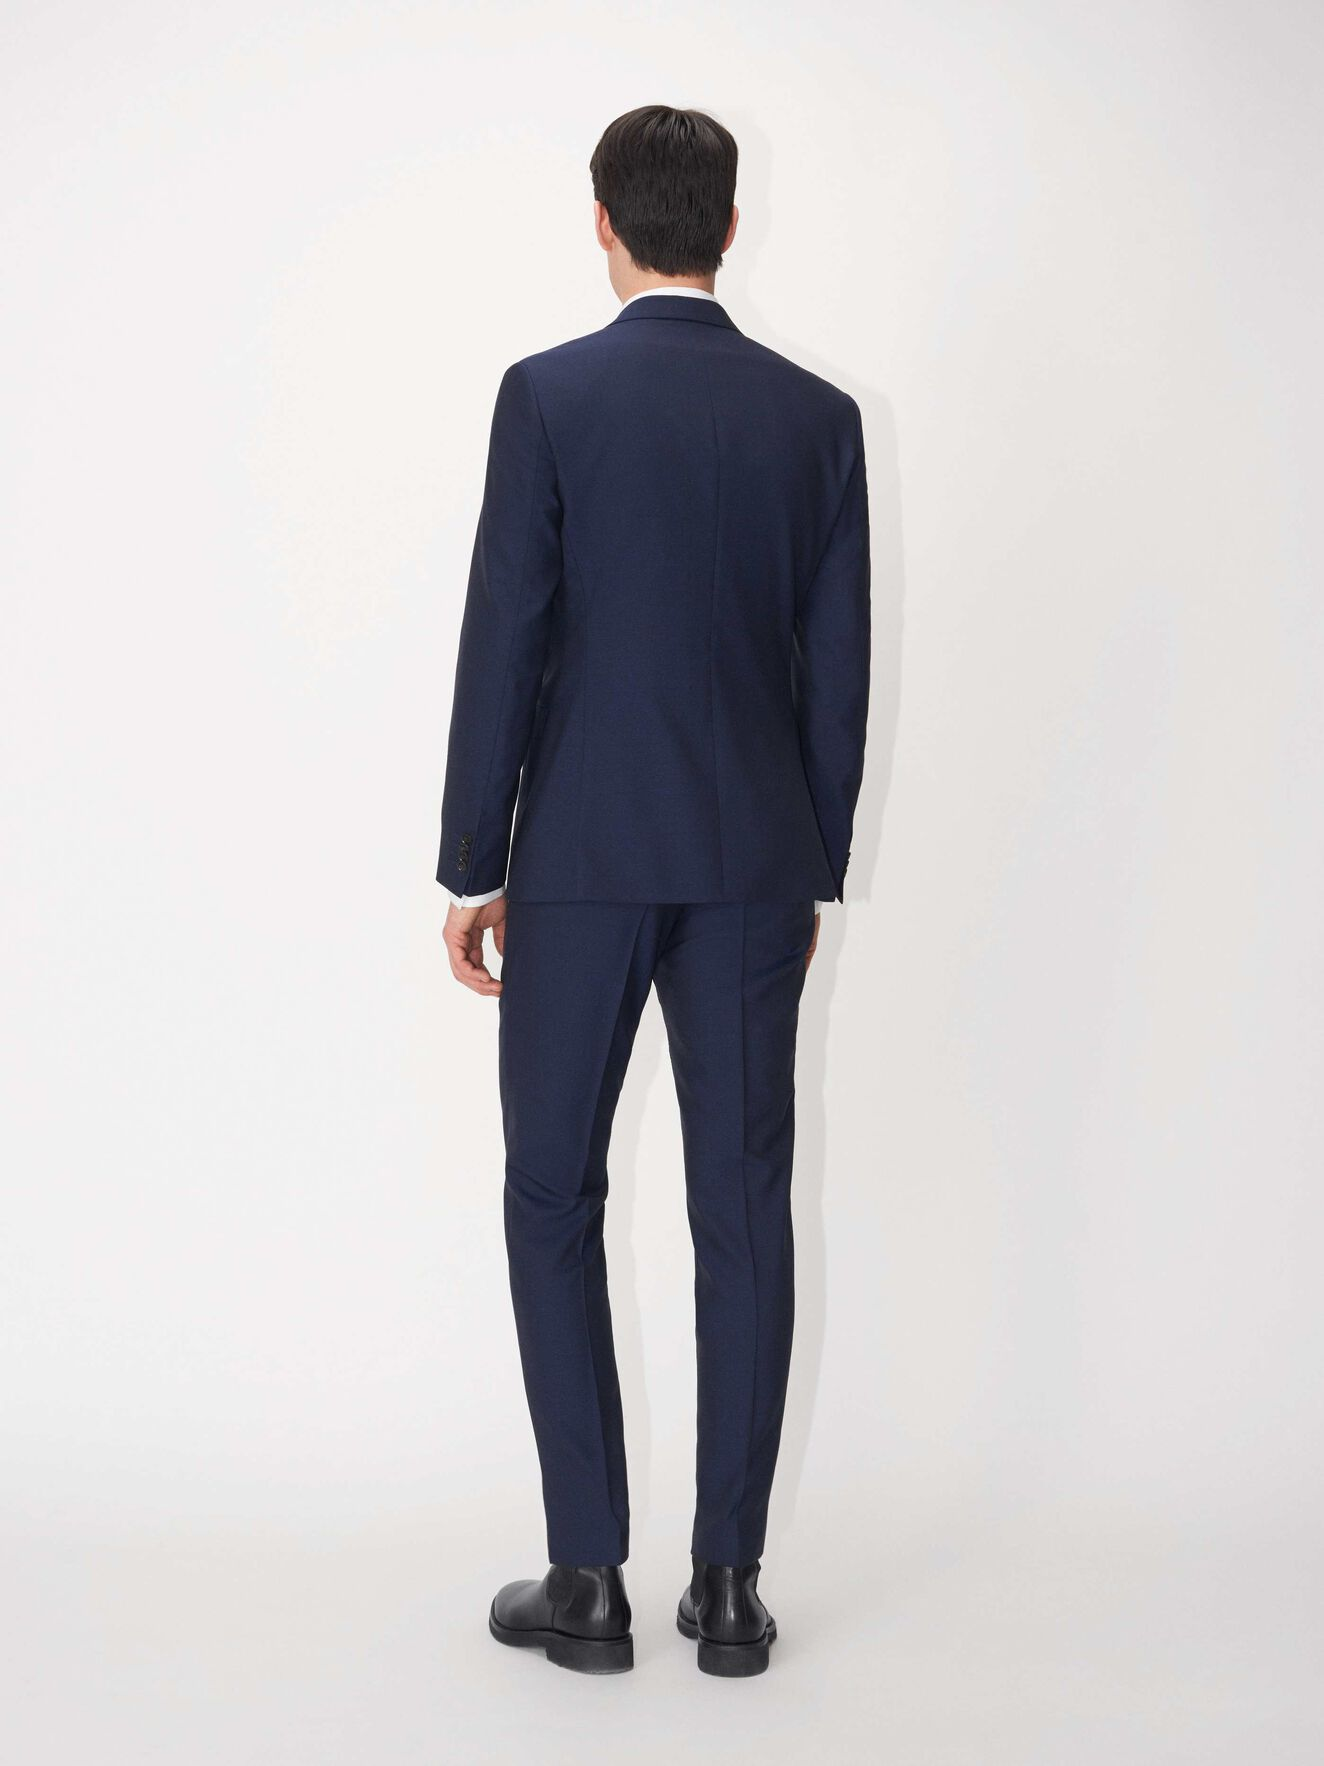 S.Jamonte Suit in Sky Captain from Tiger of Sweden